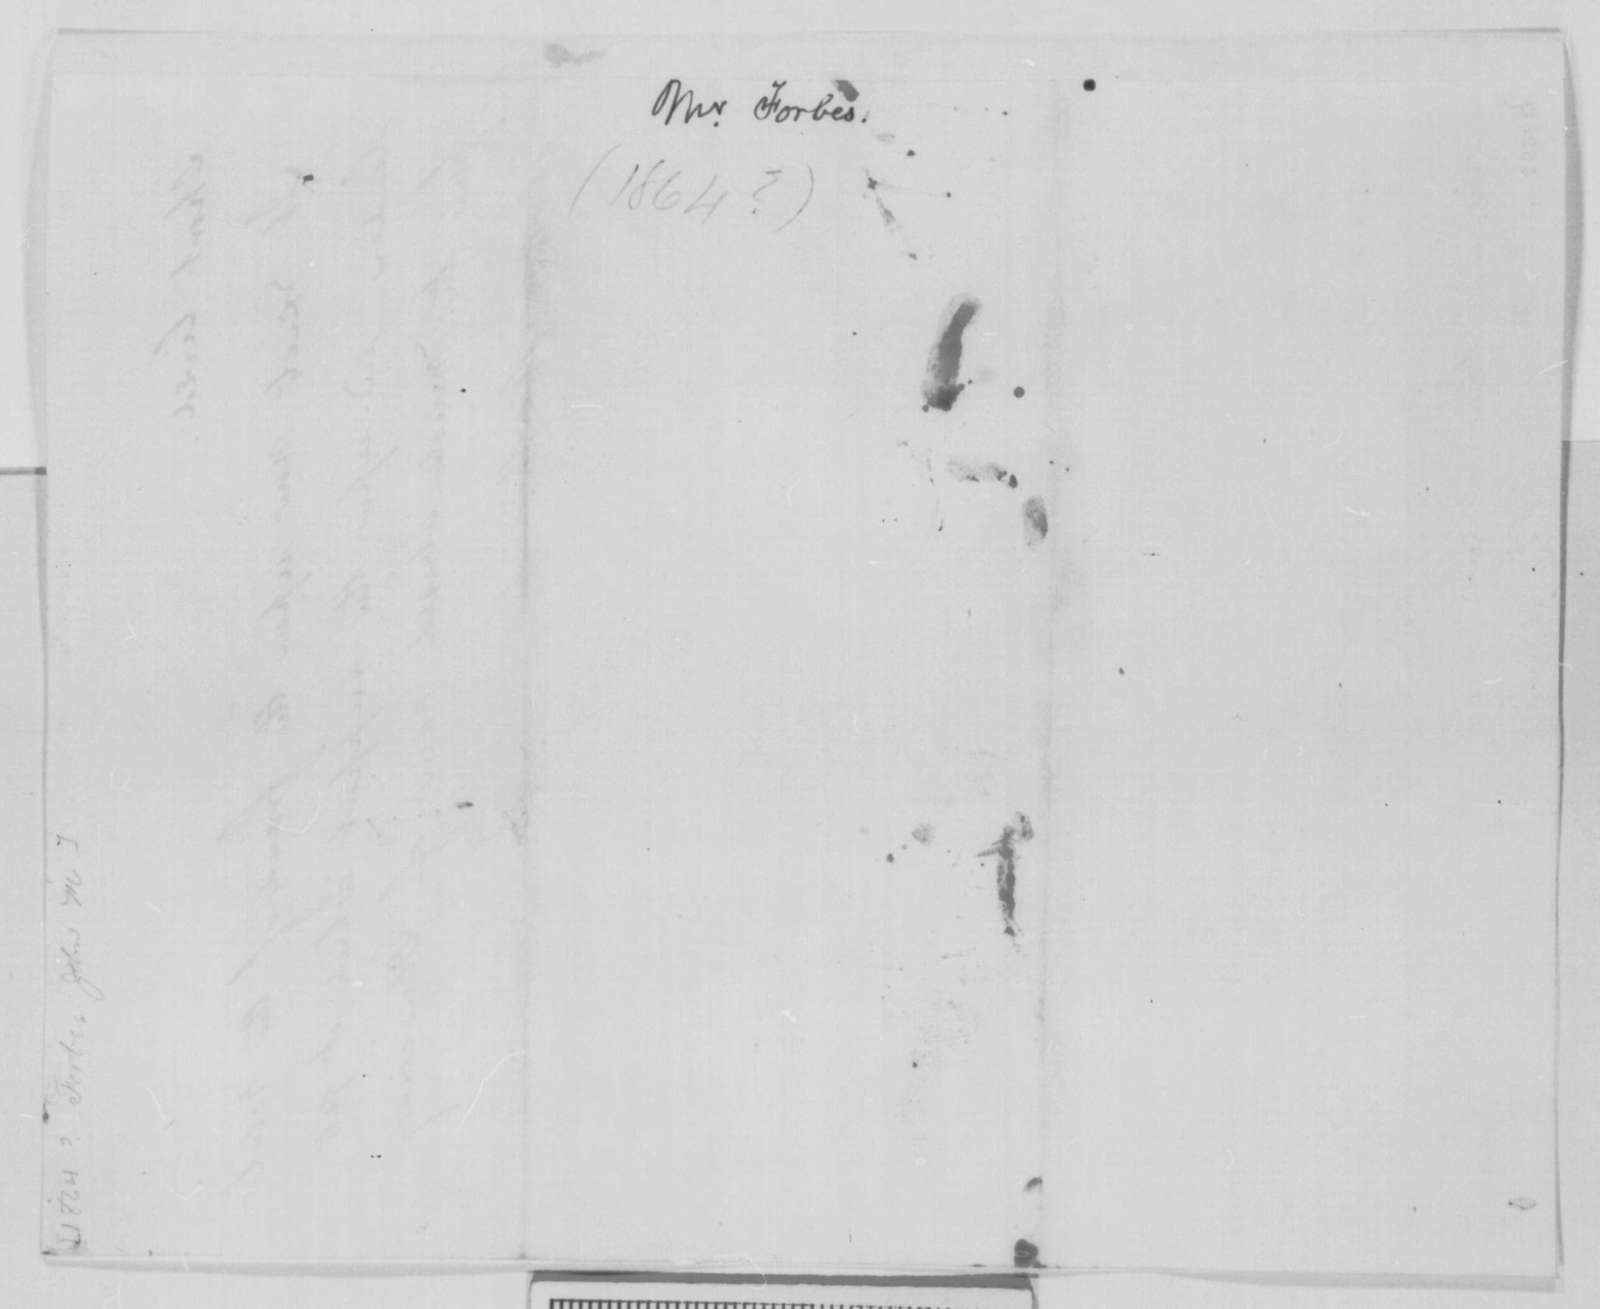 John M. Forbes to Abraham Lincoln,  ND  (Recommends negotiated peace with South)